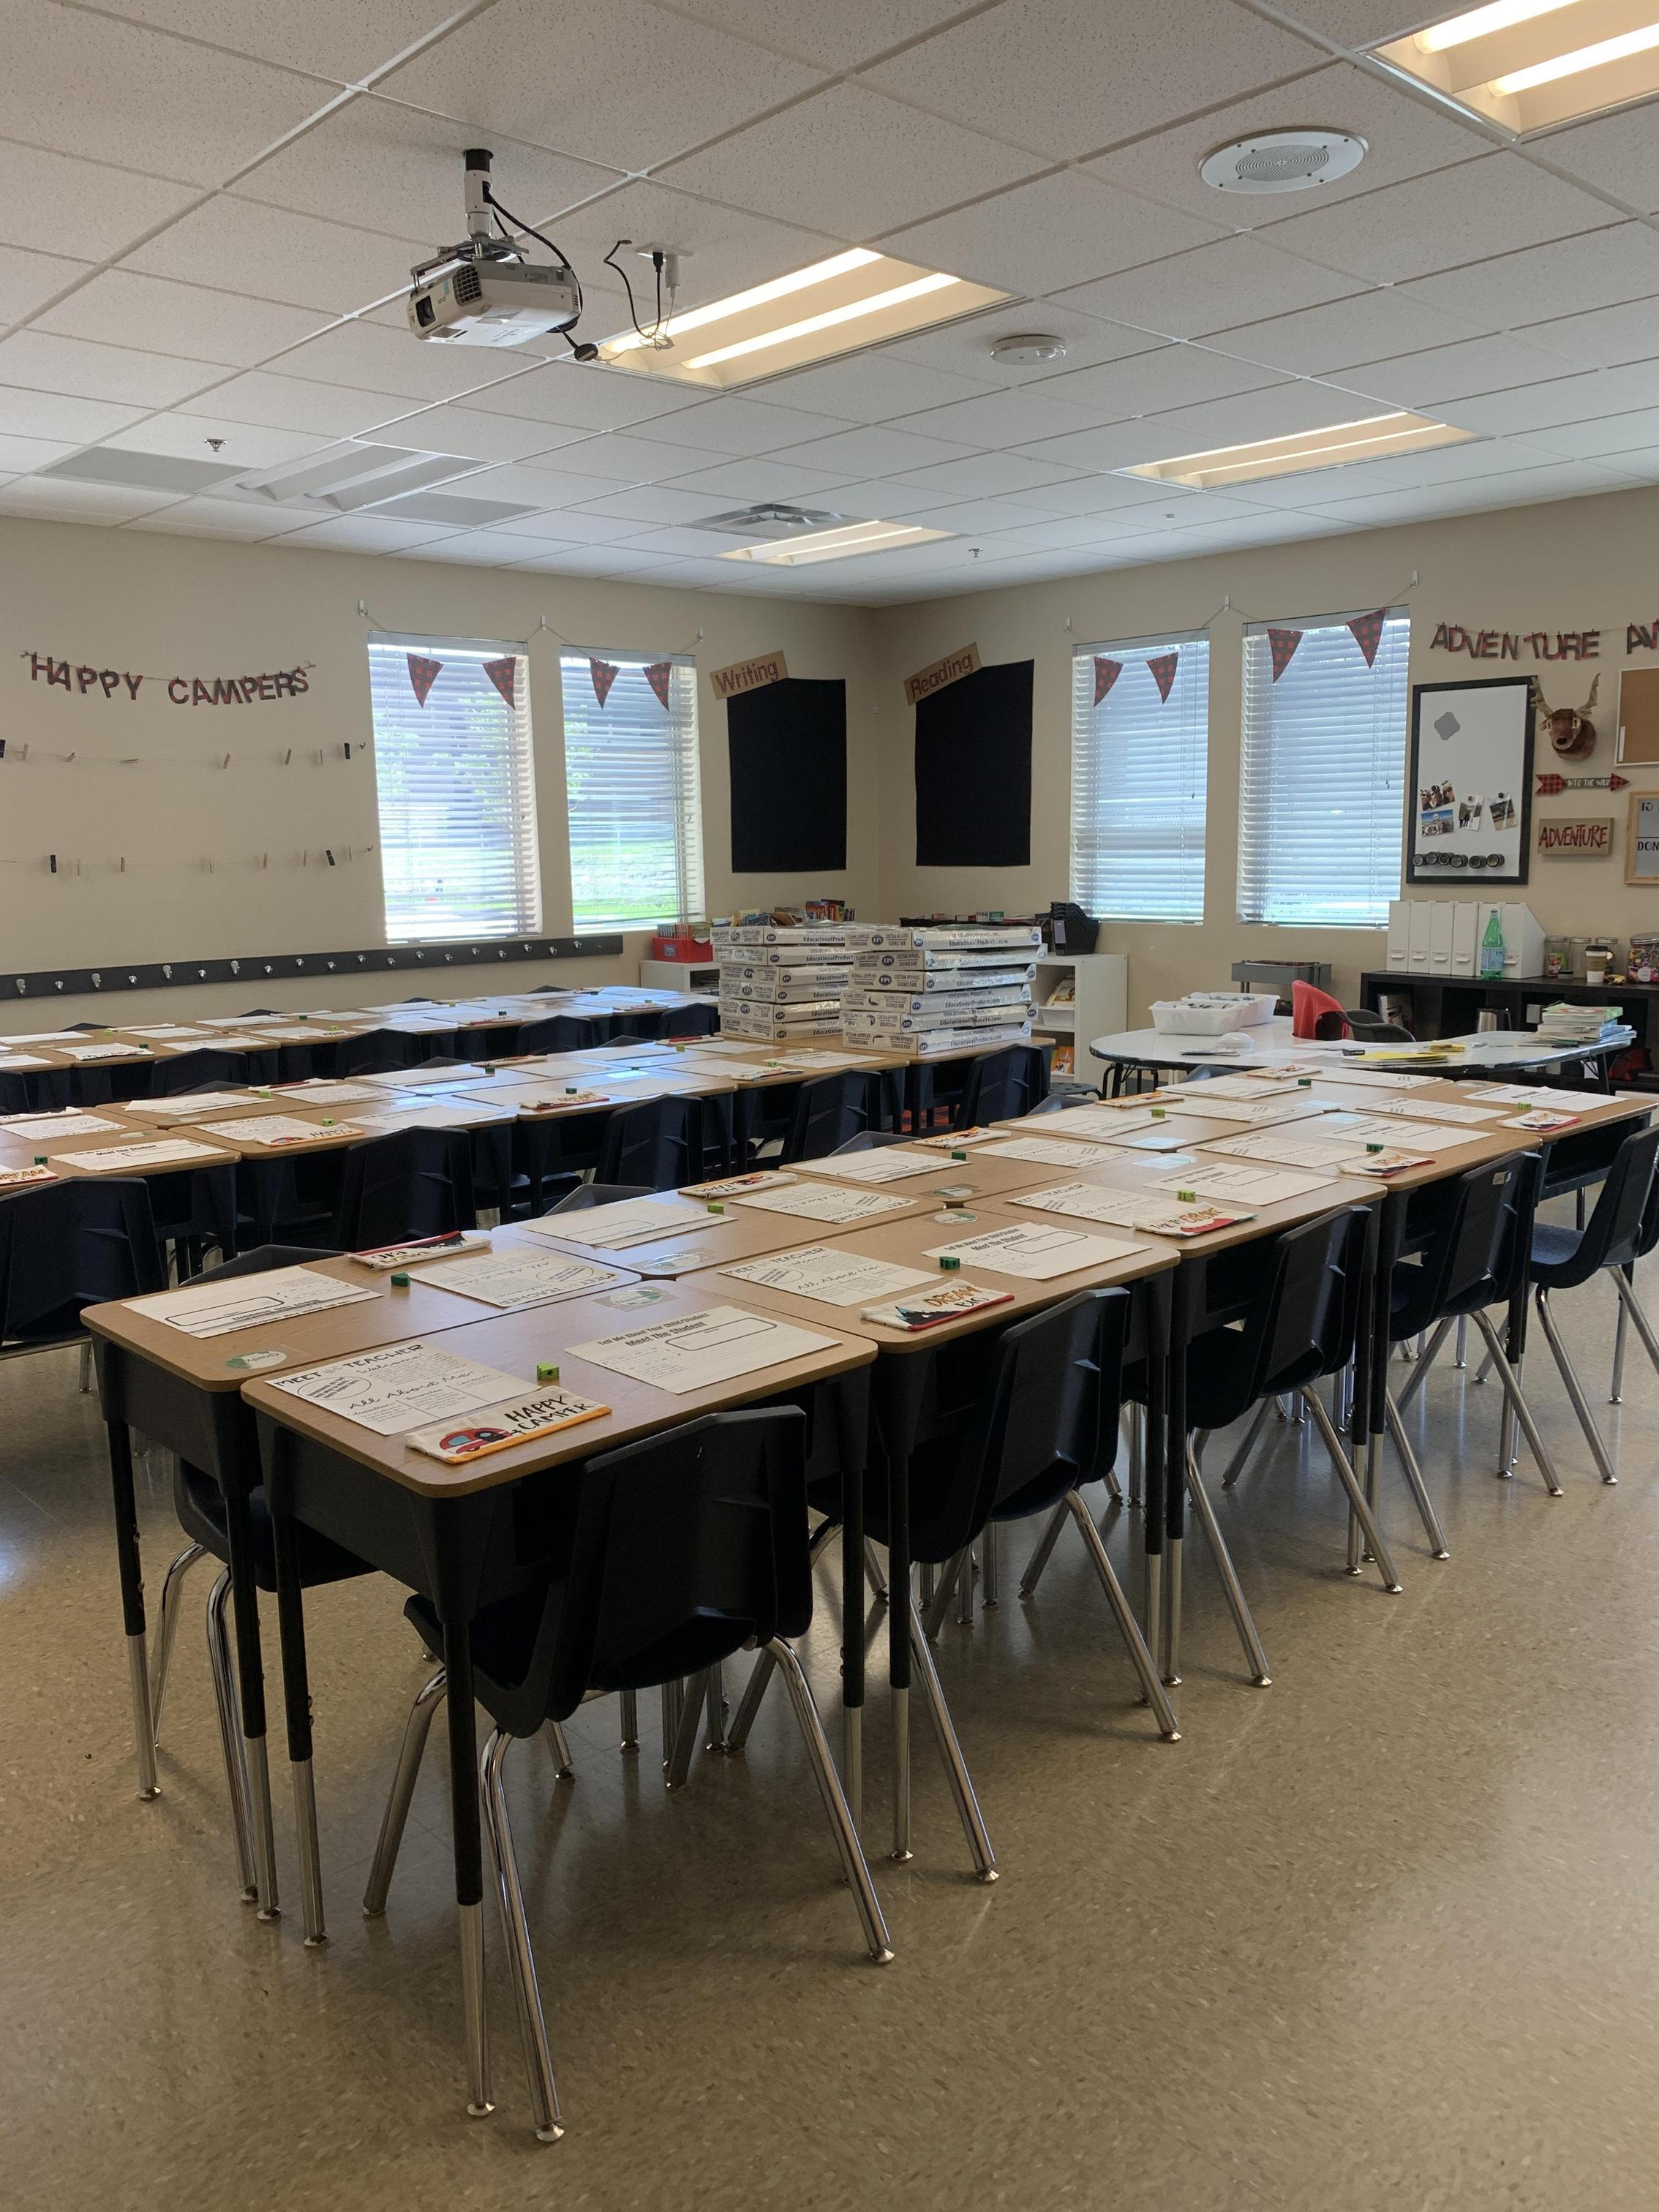 The classroom is ready.